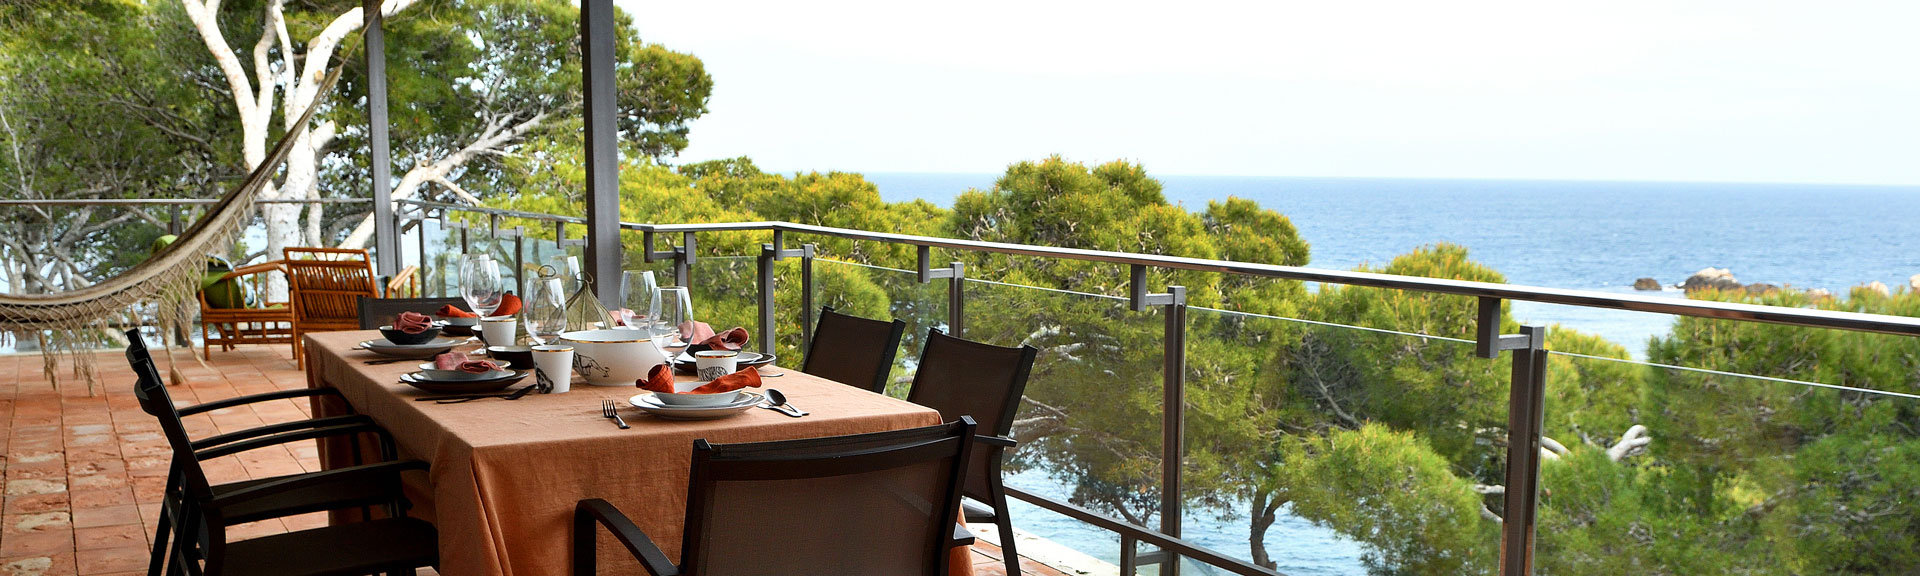 Private Villas - amazing views for lunch